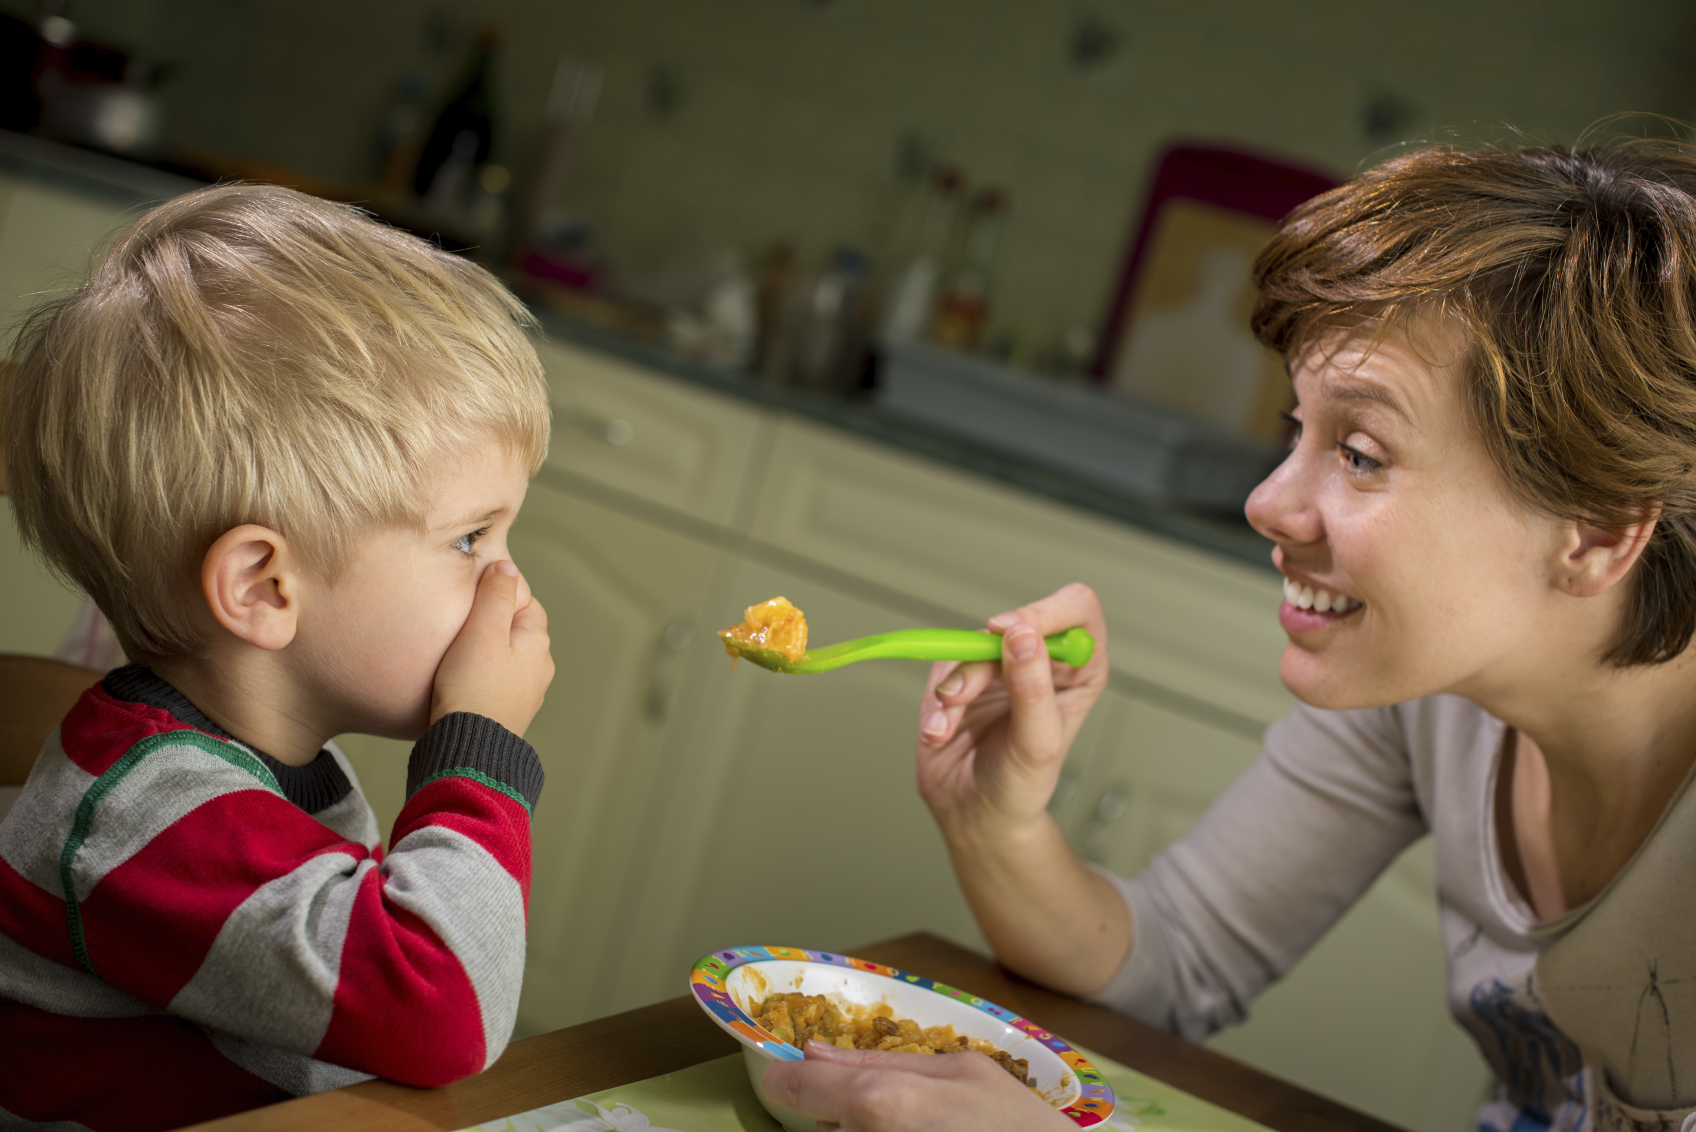 Taking Picky Eating To Extreme >> Picky Eating In Kids Could Be Sign Of Bigger Health Concerns Cbs News